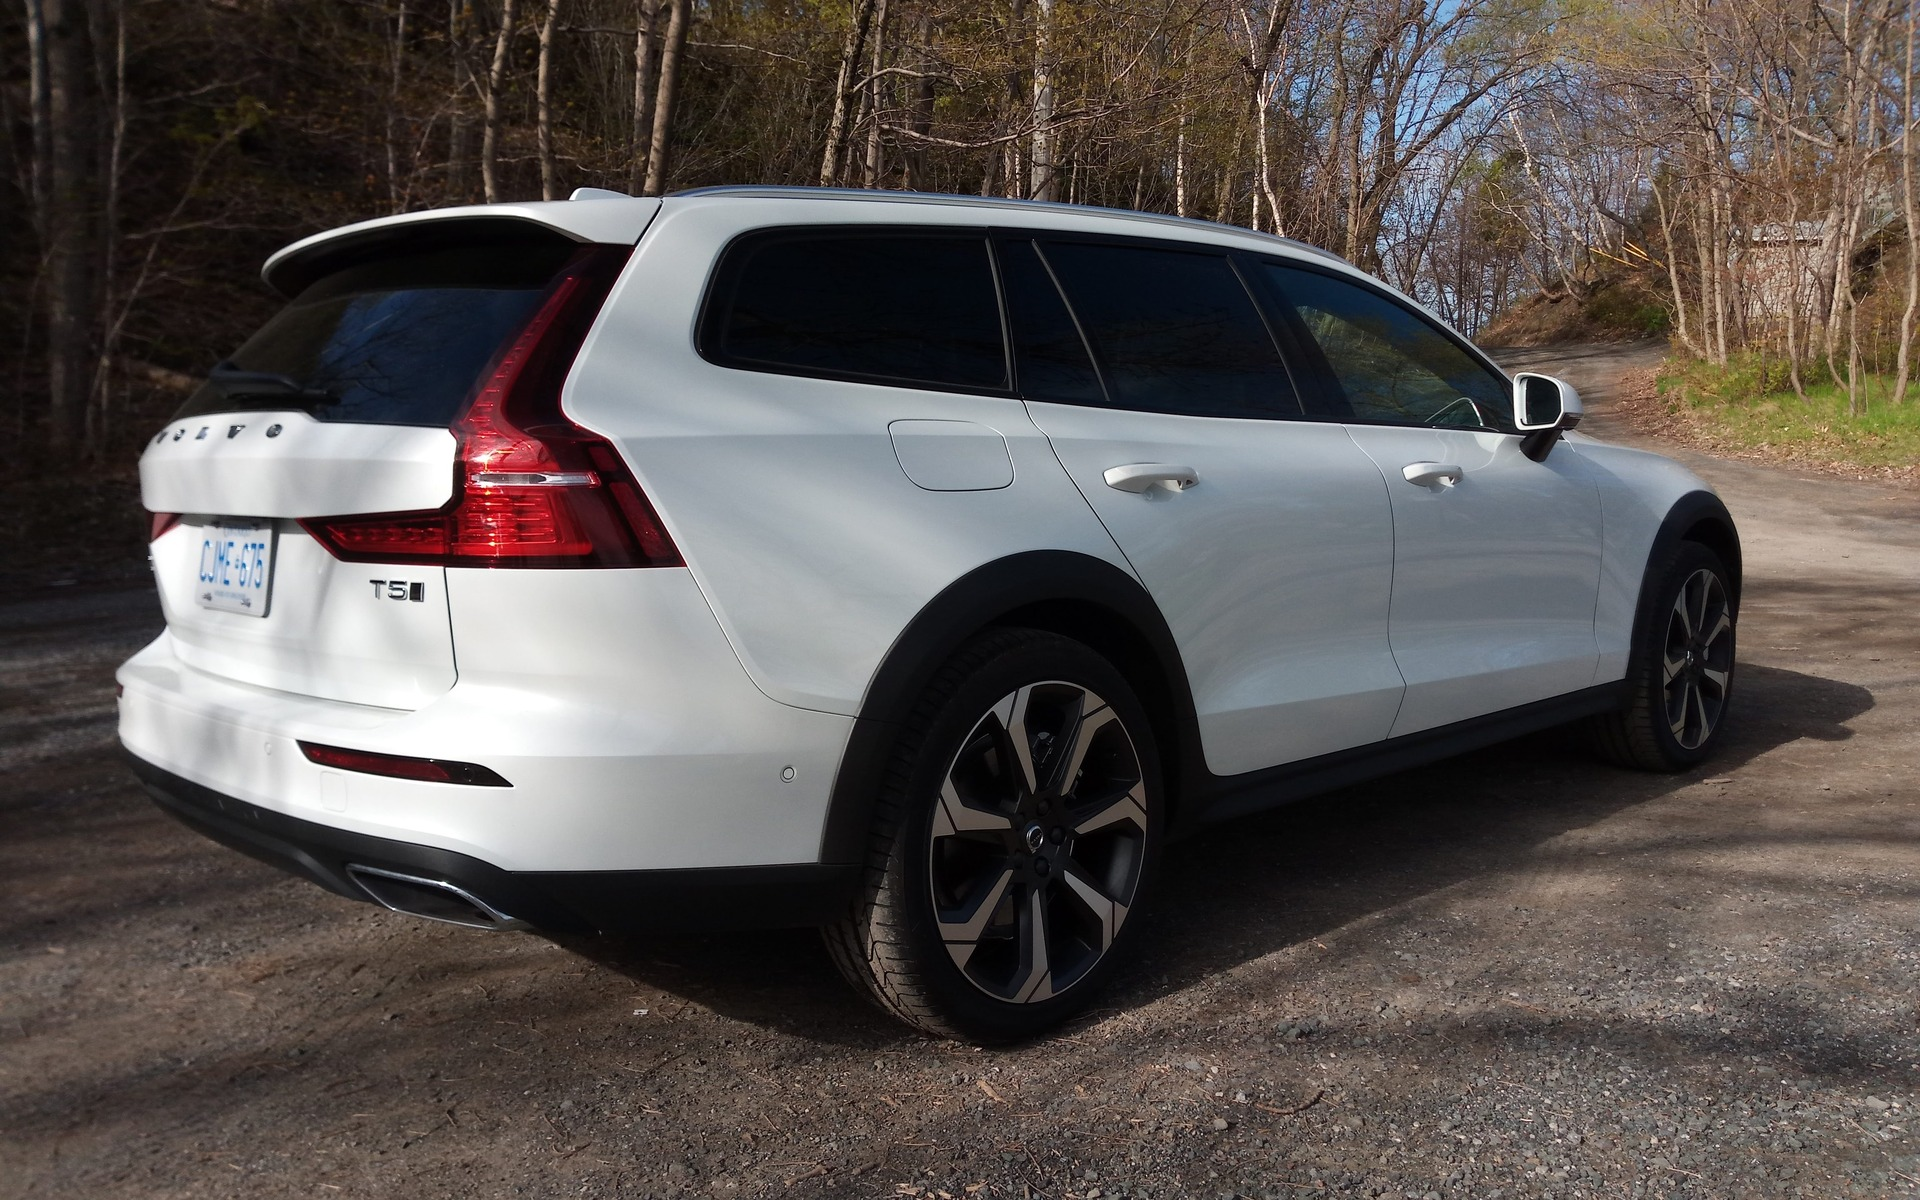 2019 Volvo V60 Cross Country: More Fun Than an SUV - The Car